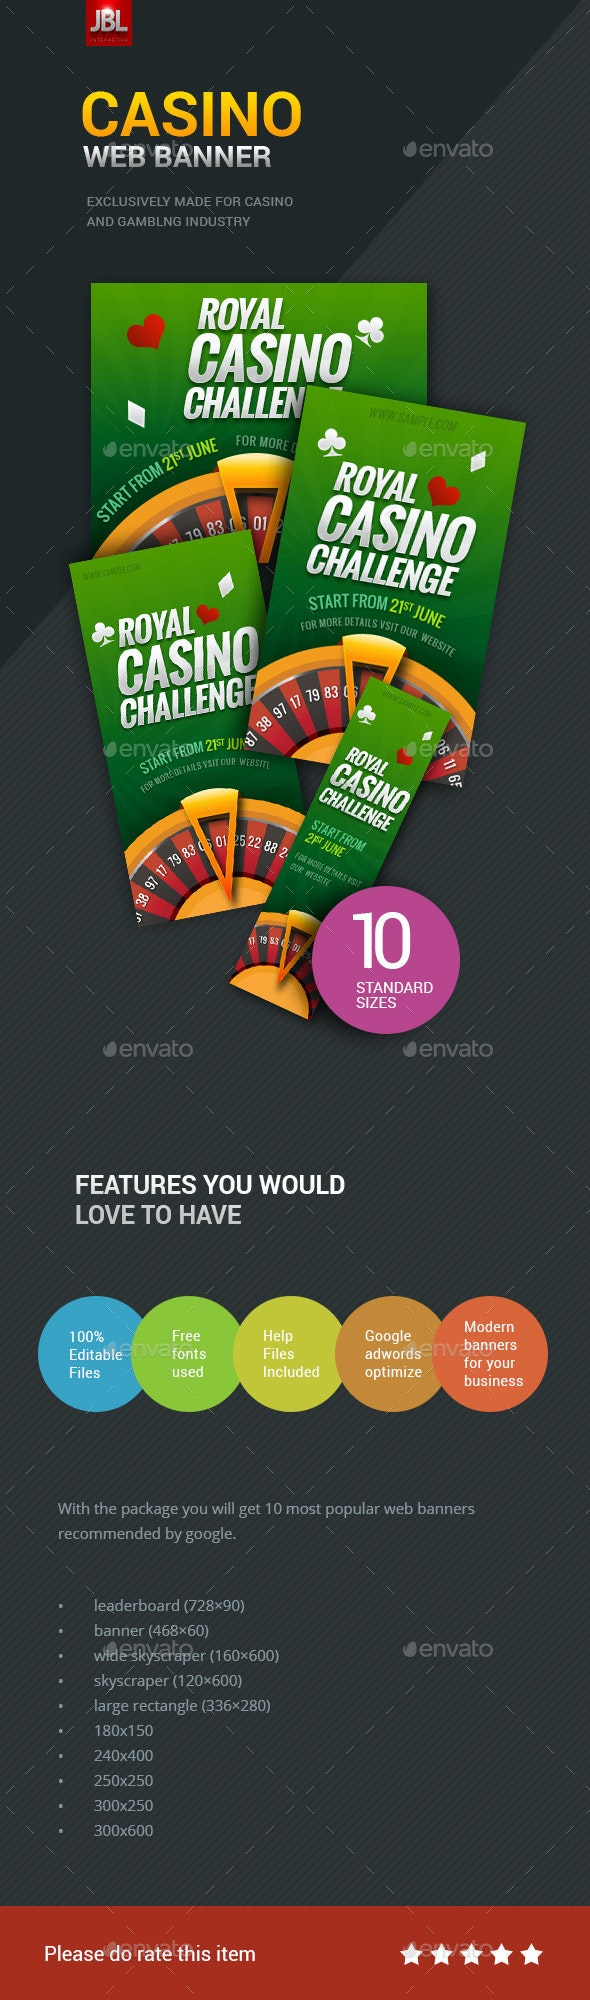 Casino Web Banner Package 01 - Banners & Ads Web Elements